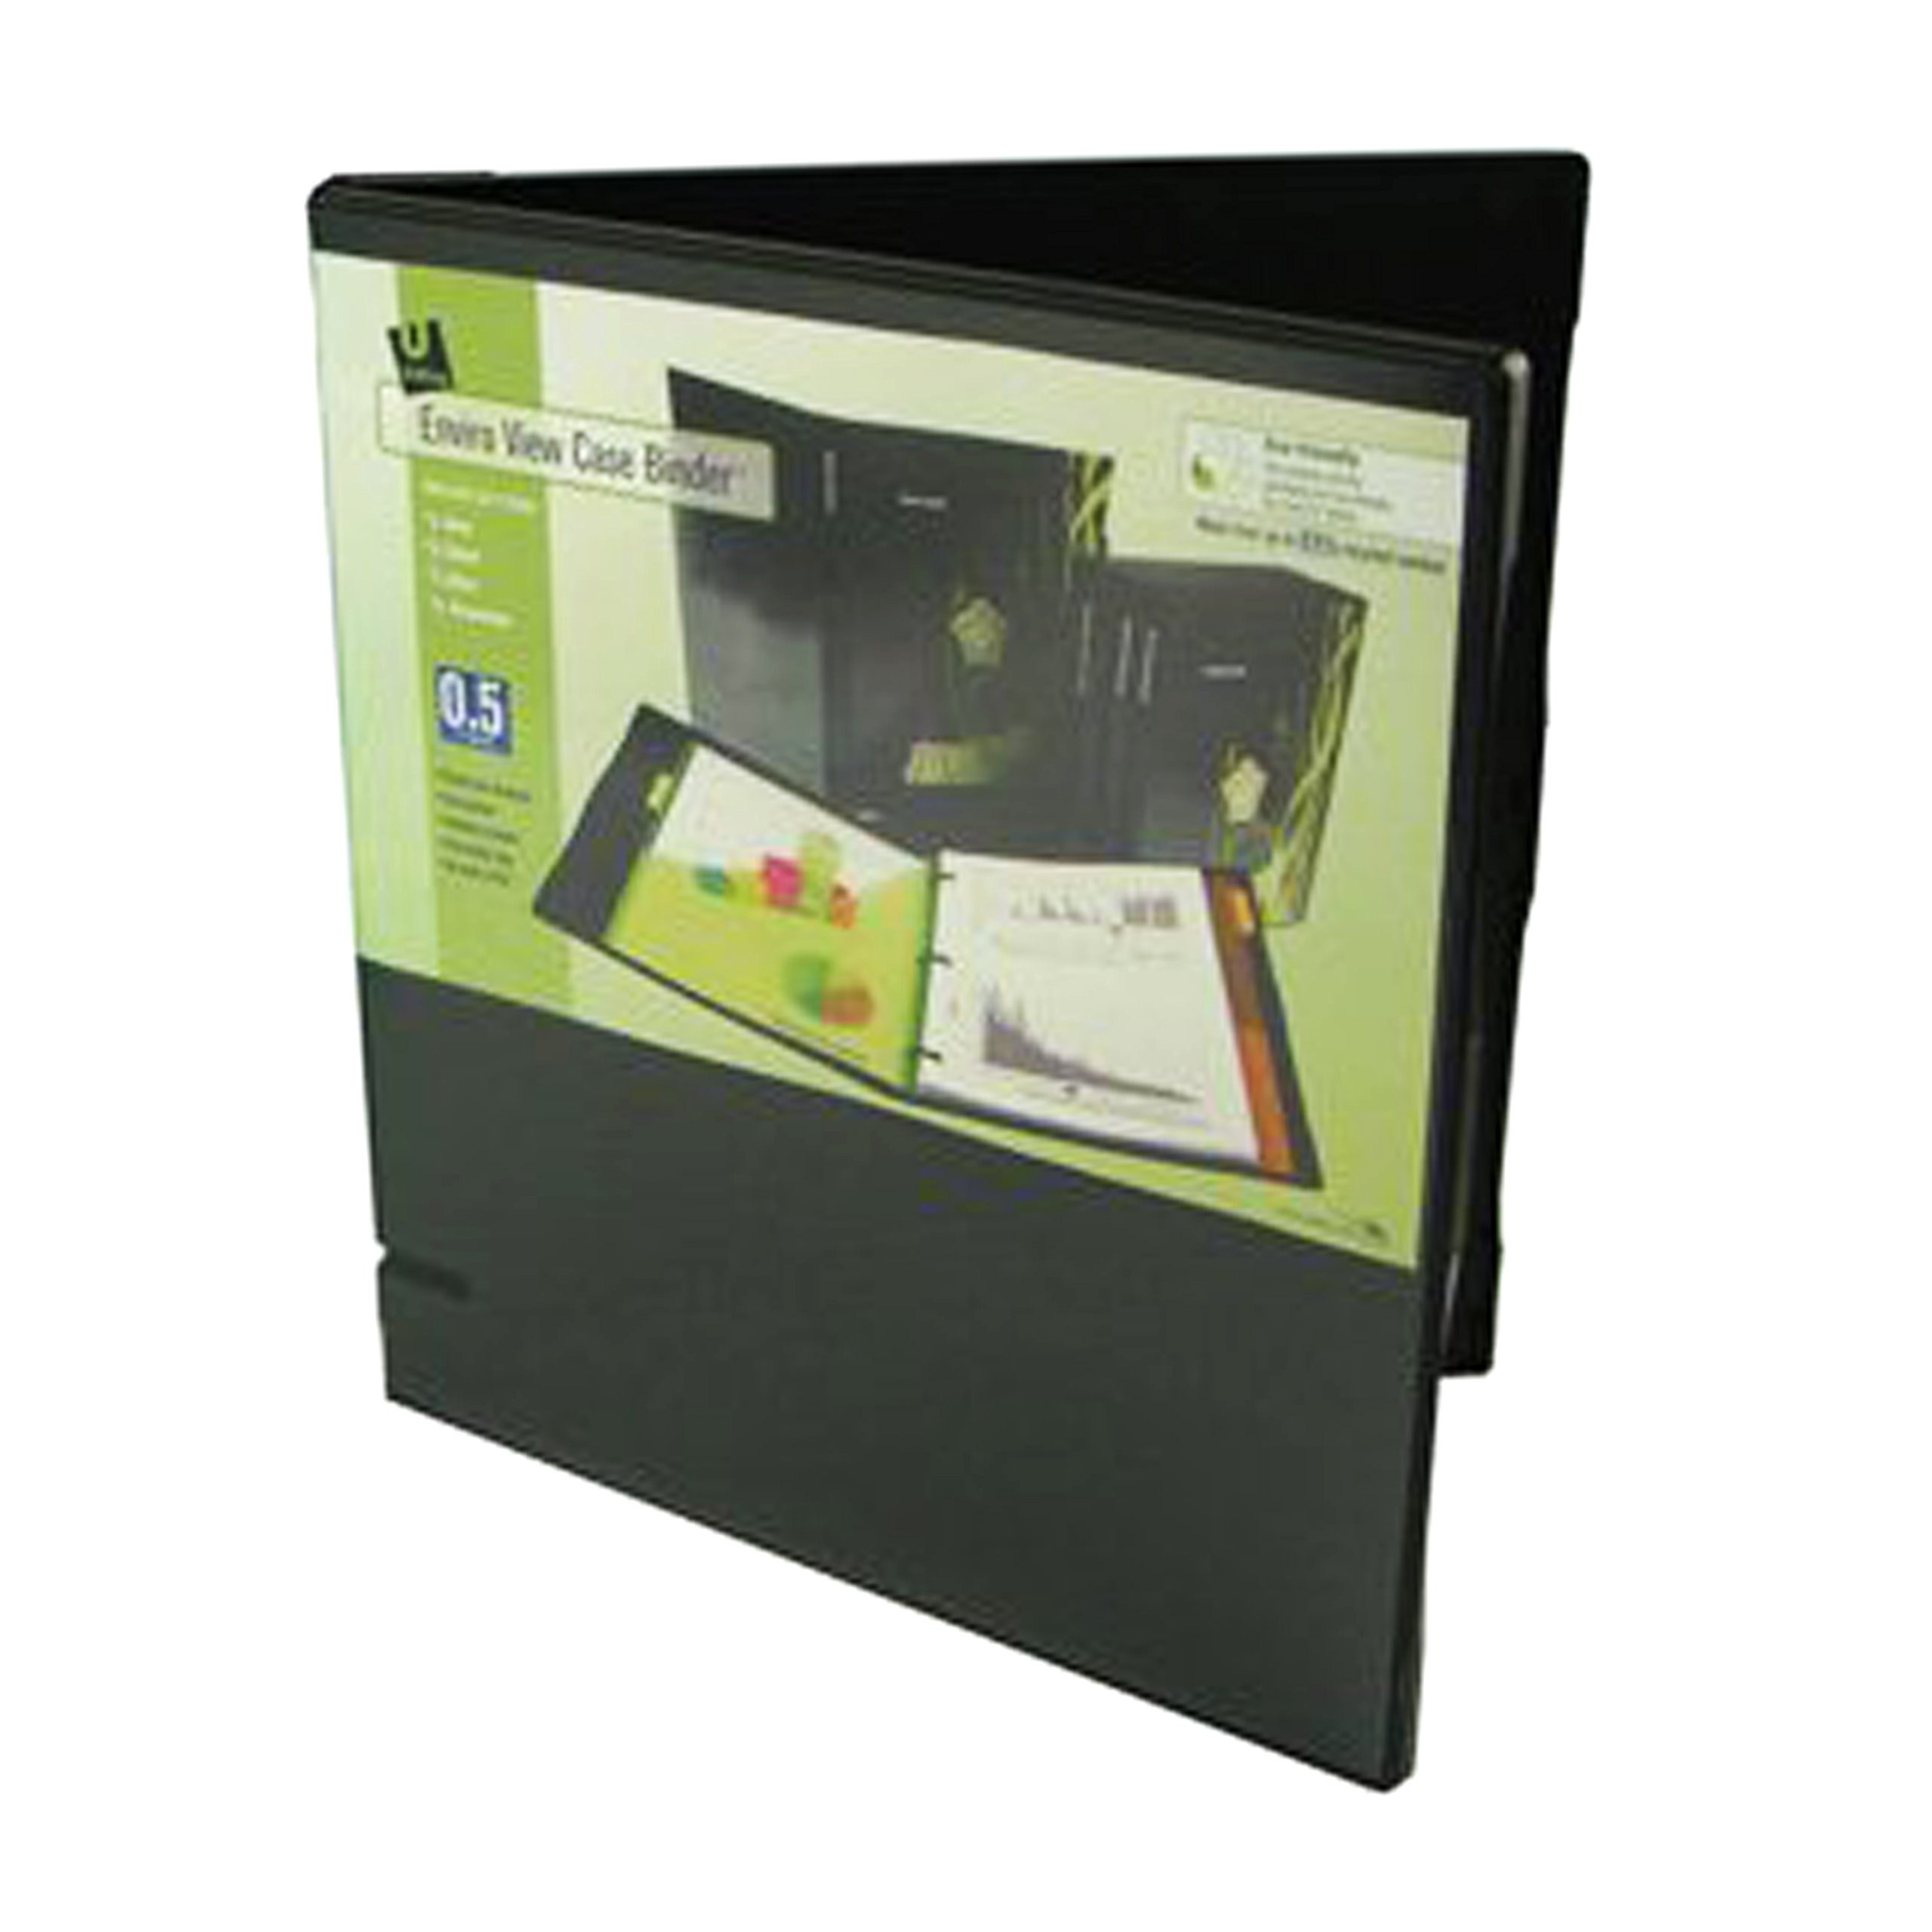 UniKeep 3 Ring Binder - Black - Fully Enclosed View Binder - 0.5 Inch Spine - With Clear Outer Overlay - Box of 36 Binders